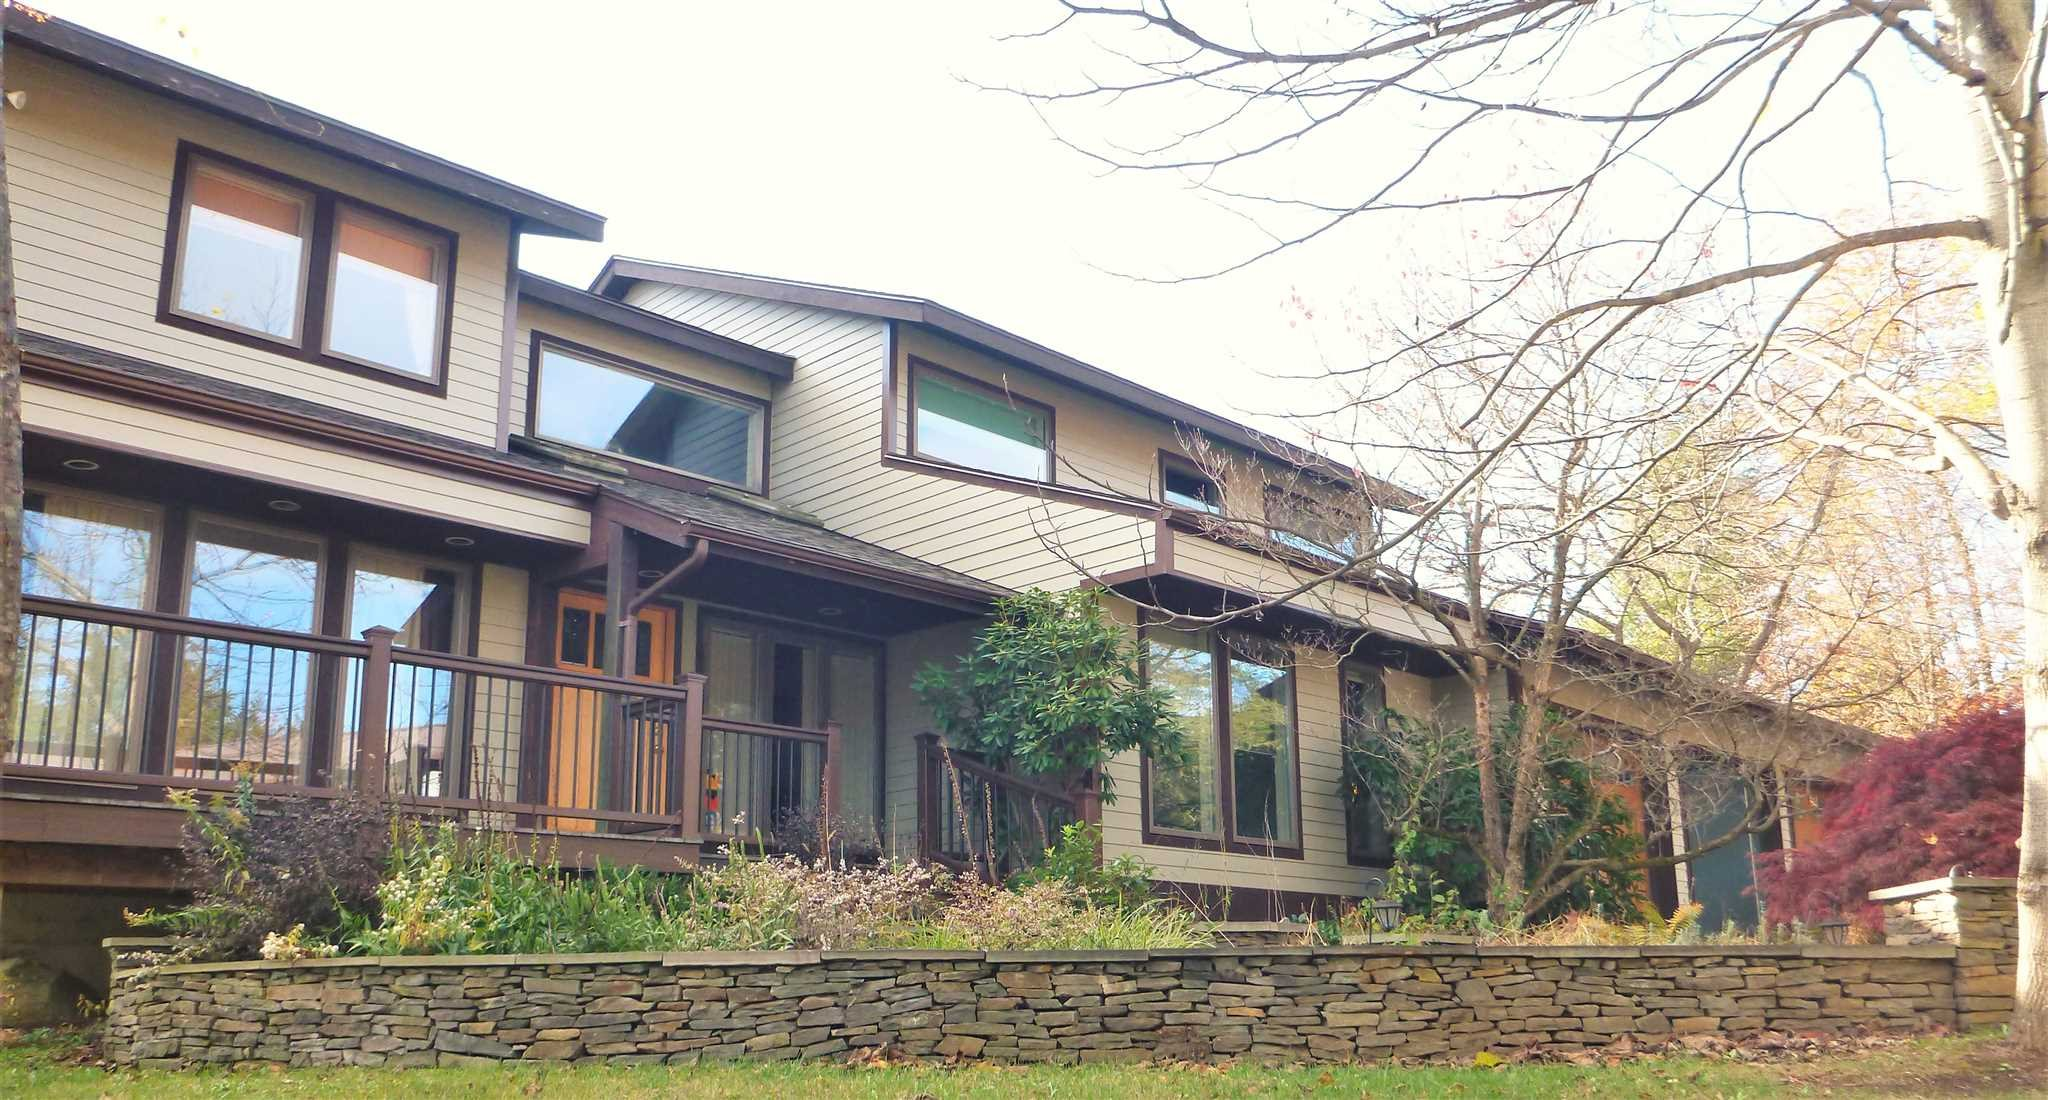 Additional photo for property listing at 475 CHURCH AVENUE 475 CHURCH AVENUE Germantown, New York 12526 United States